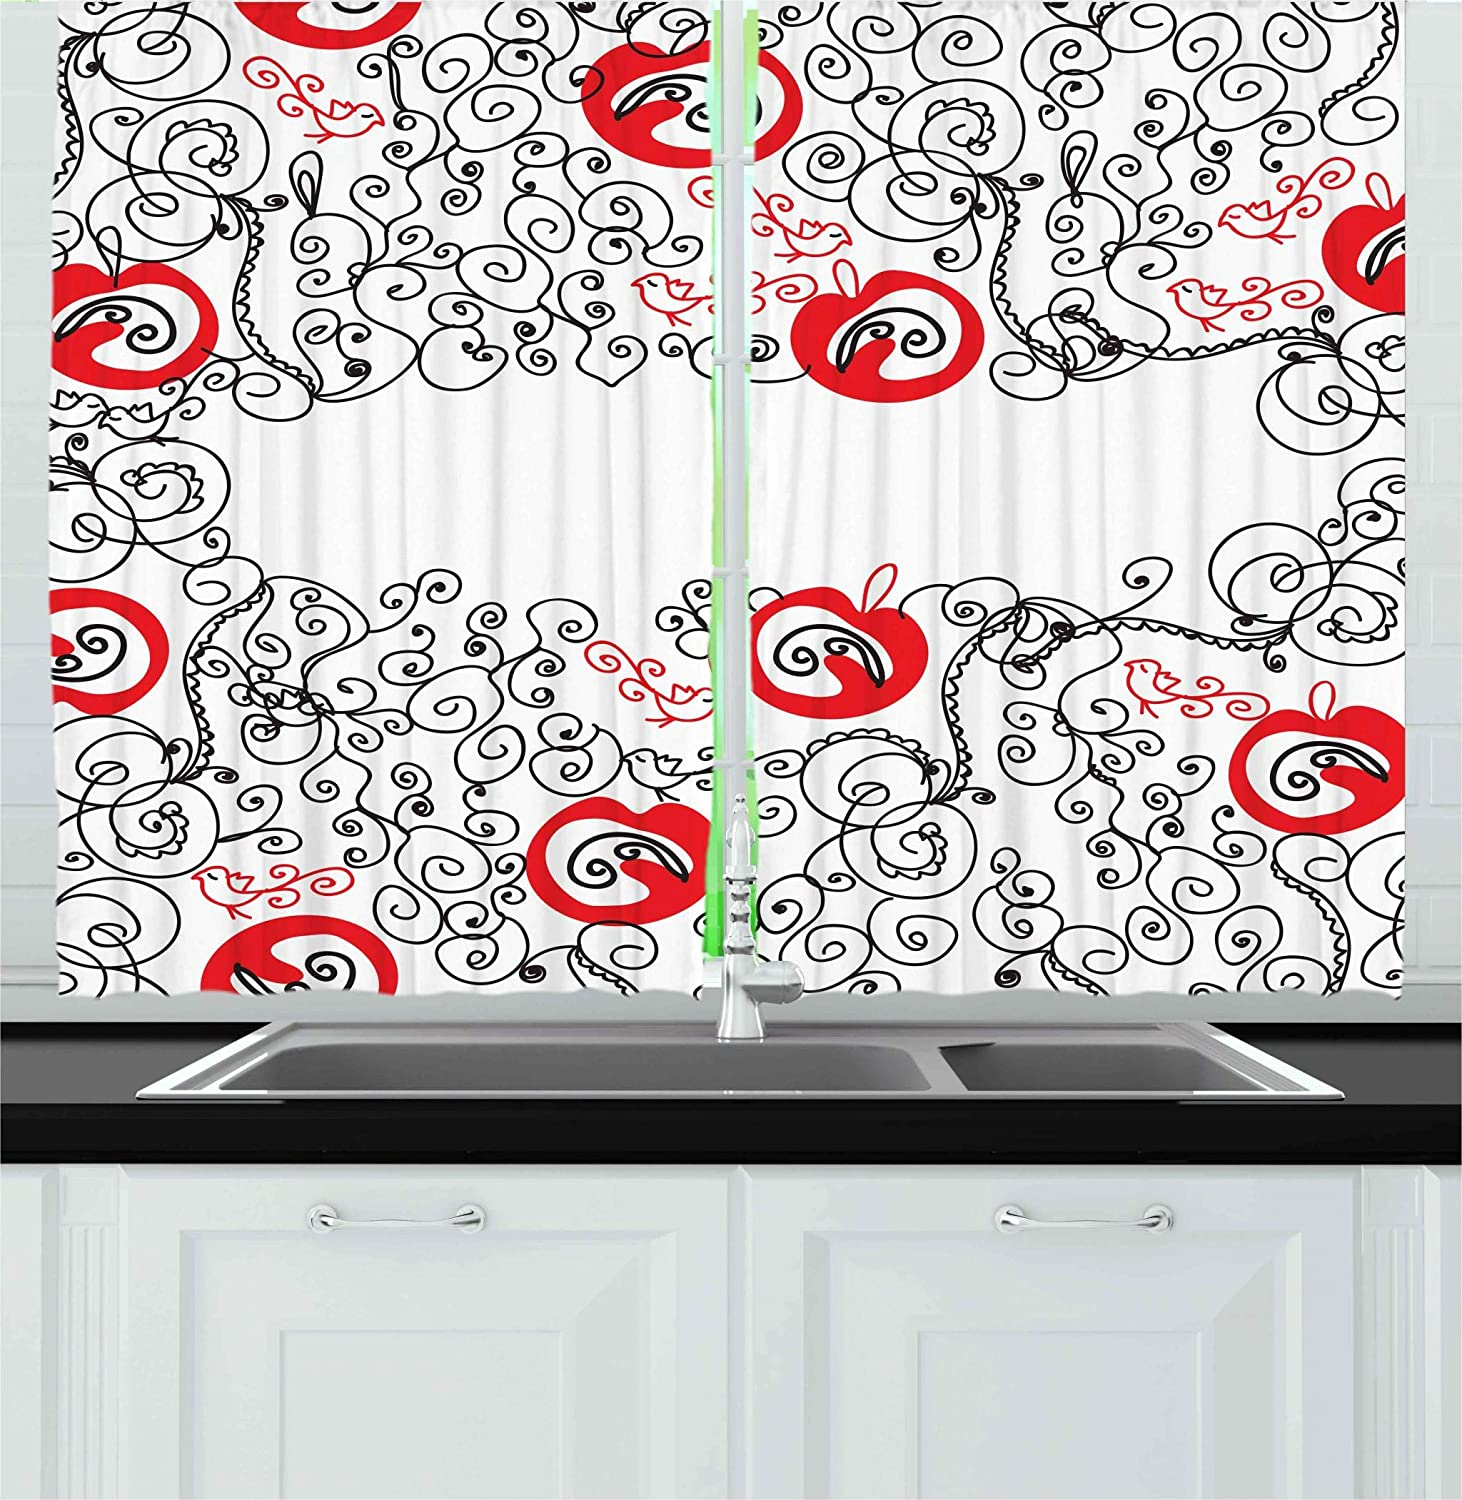 Ambesonne red and black kitchen curtains minimalist home decor themed sketchy birds swirls and apple shapes window drapes 2 panels set for kitchen cafe